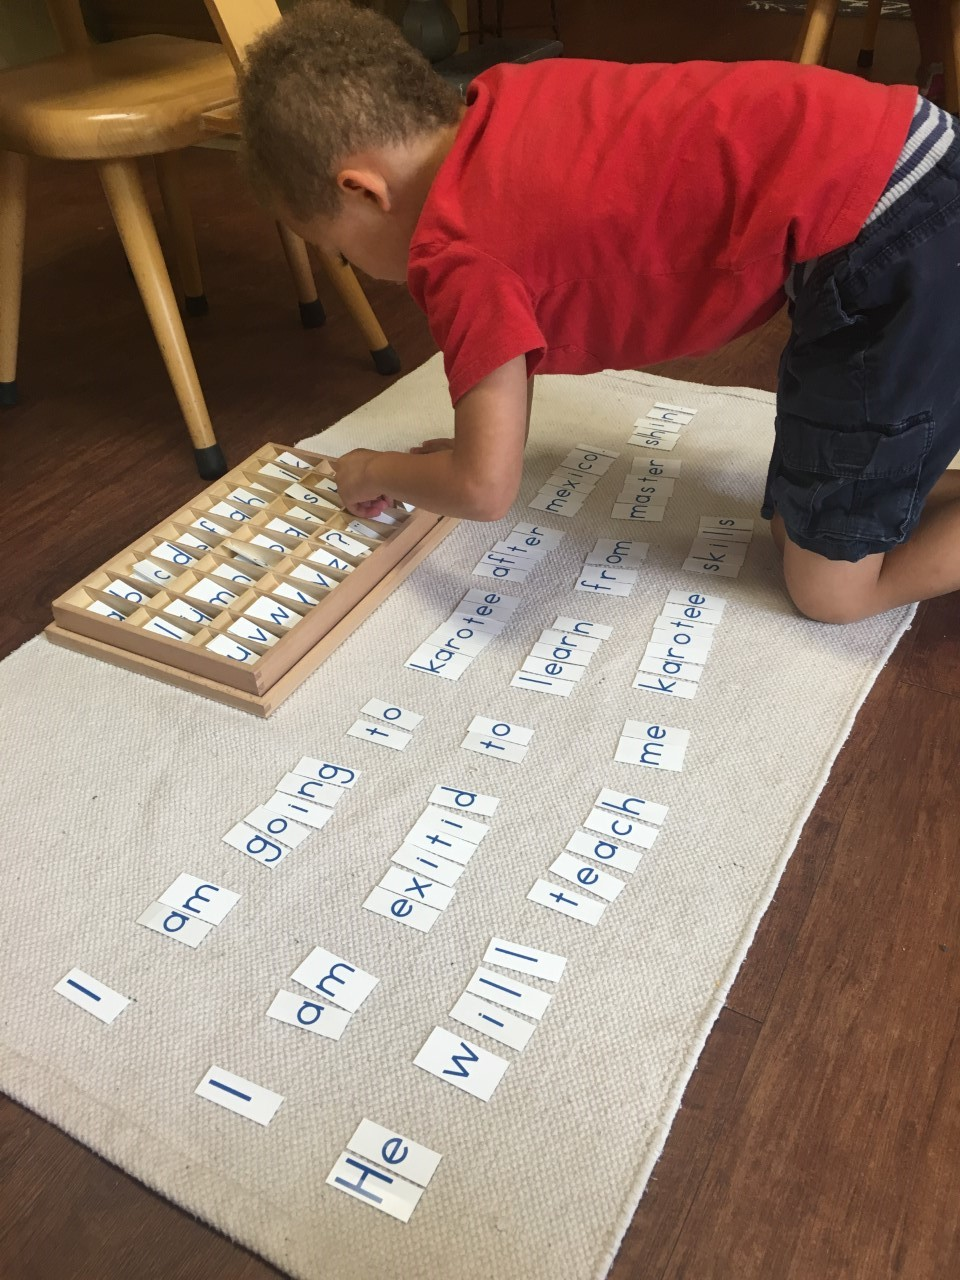 The child is expressing himself through written language.